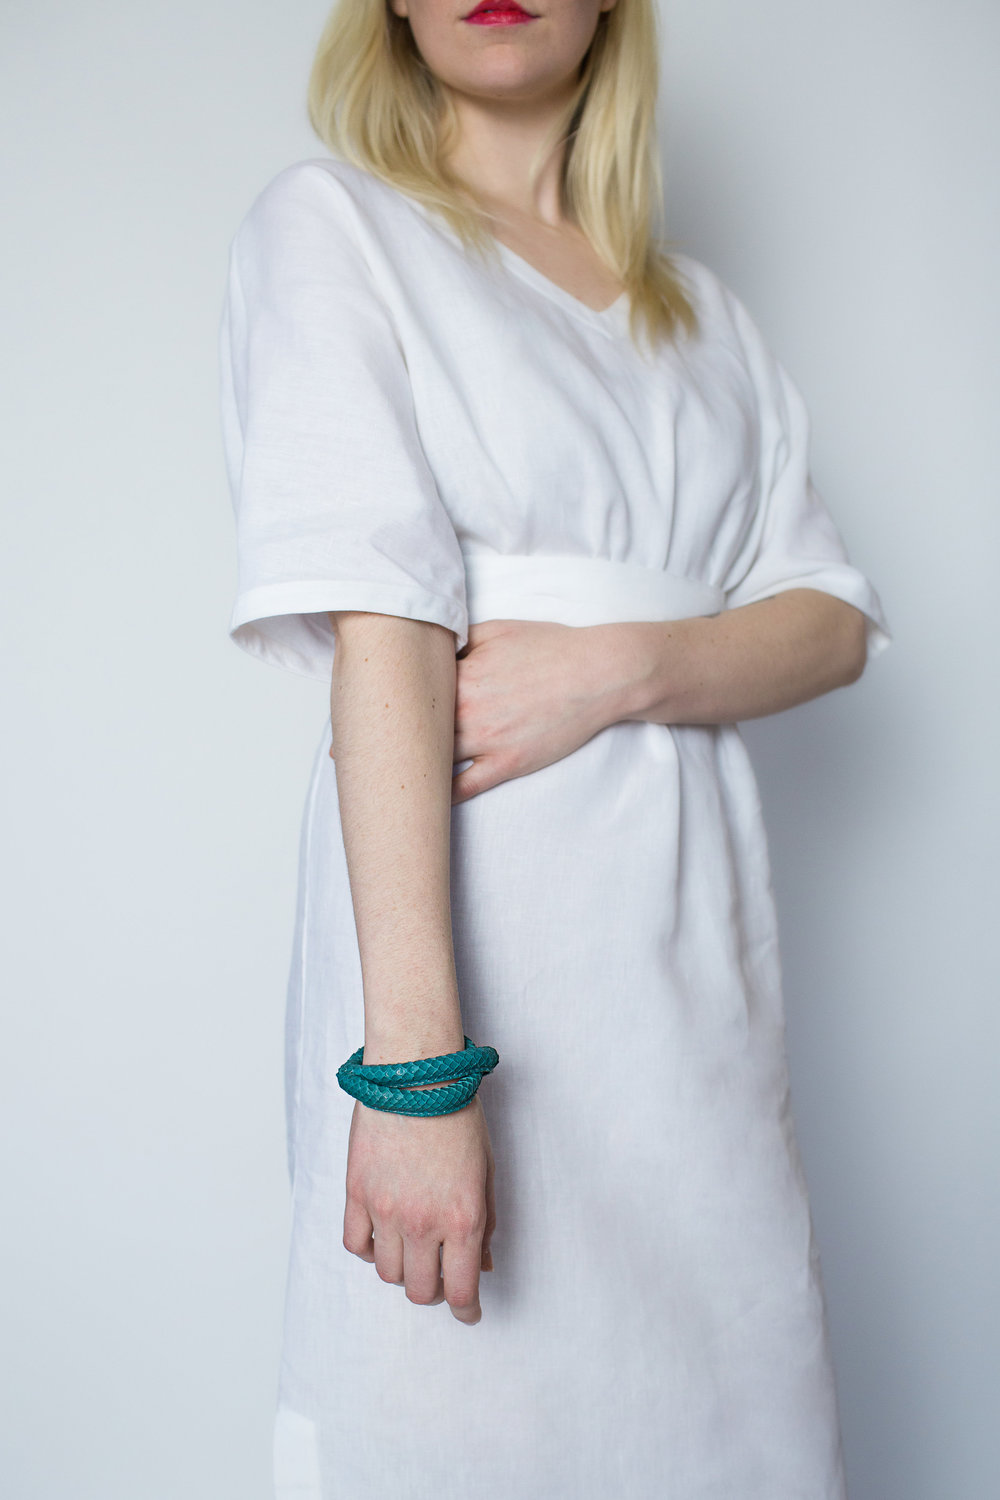 Rachel Ravitch teal loop bracelet